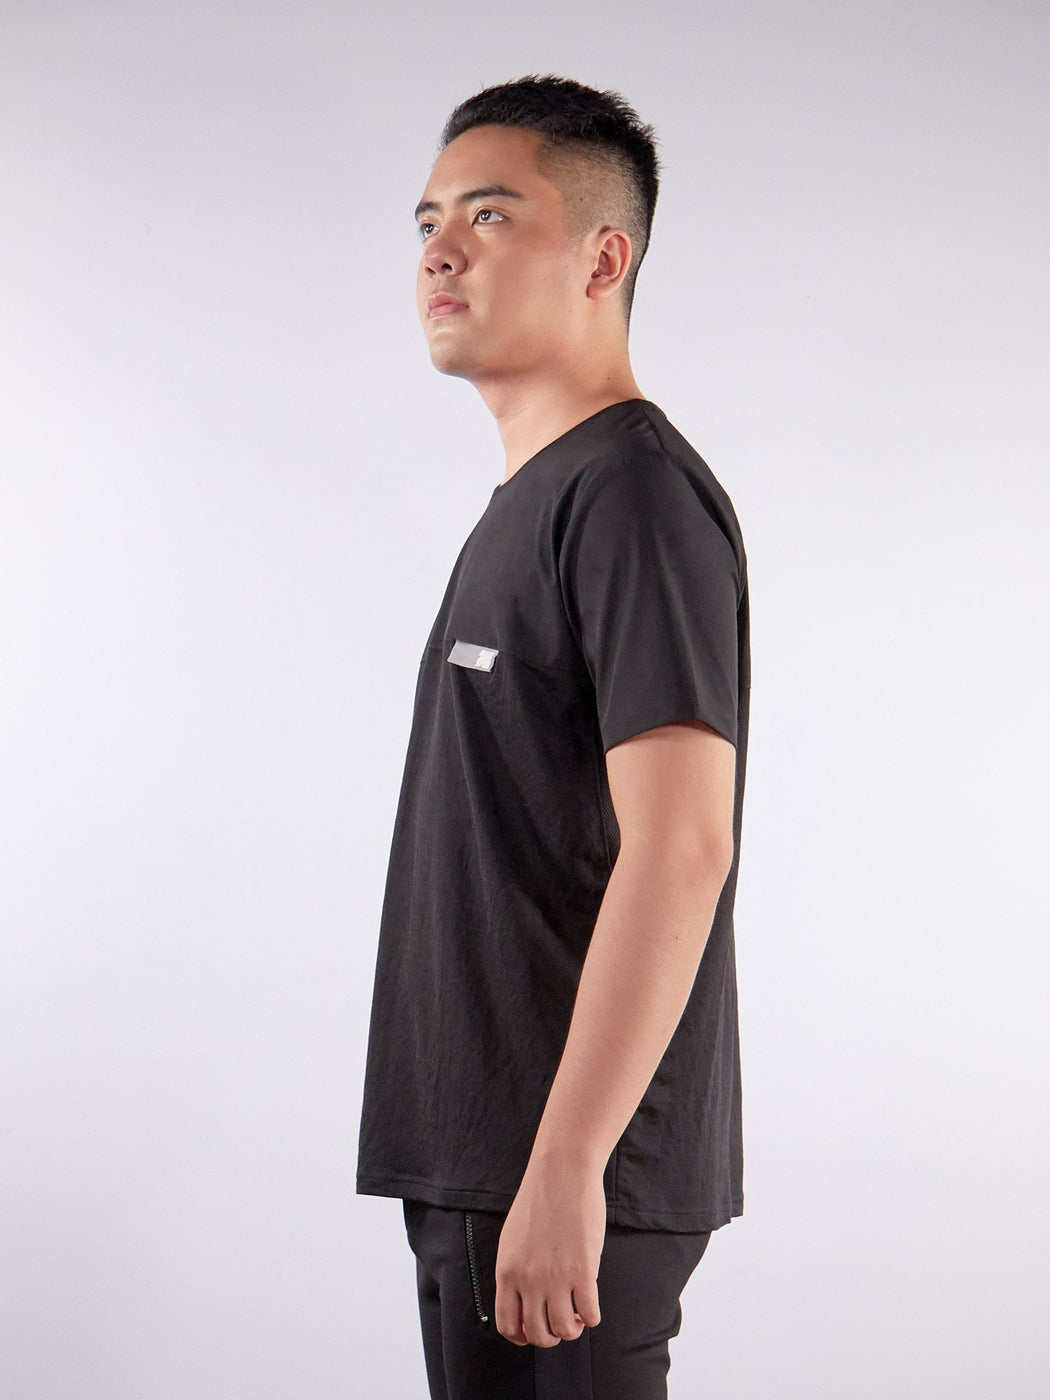 Unisex Ultimate Utilitarian Black Male T-shirt